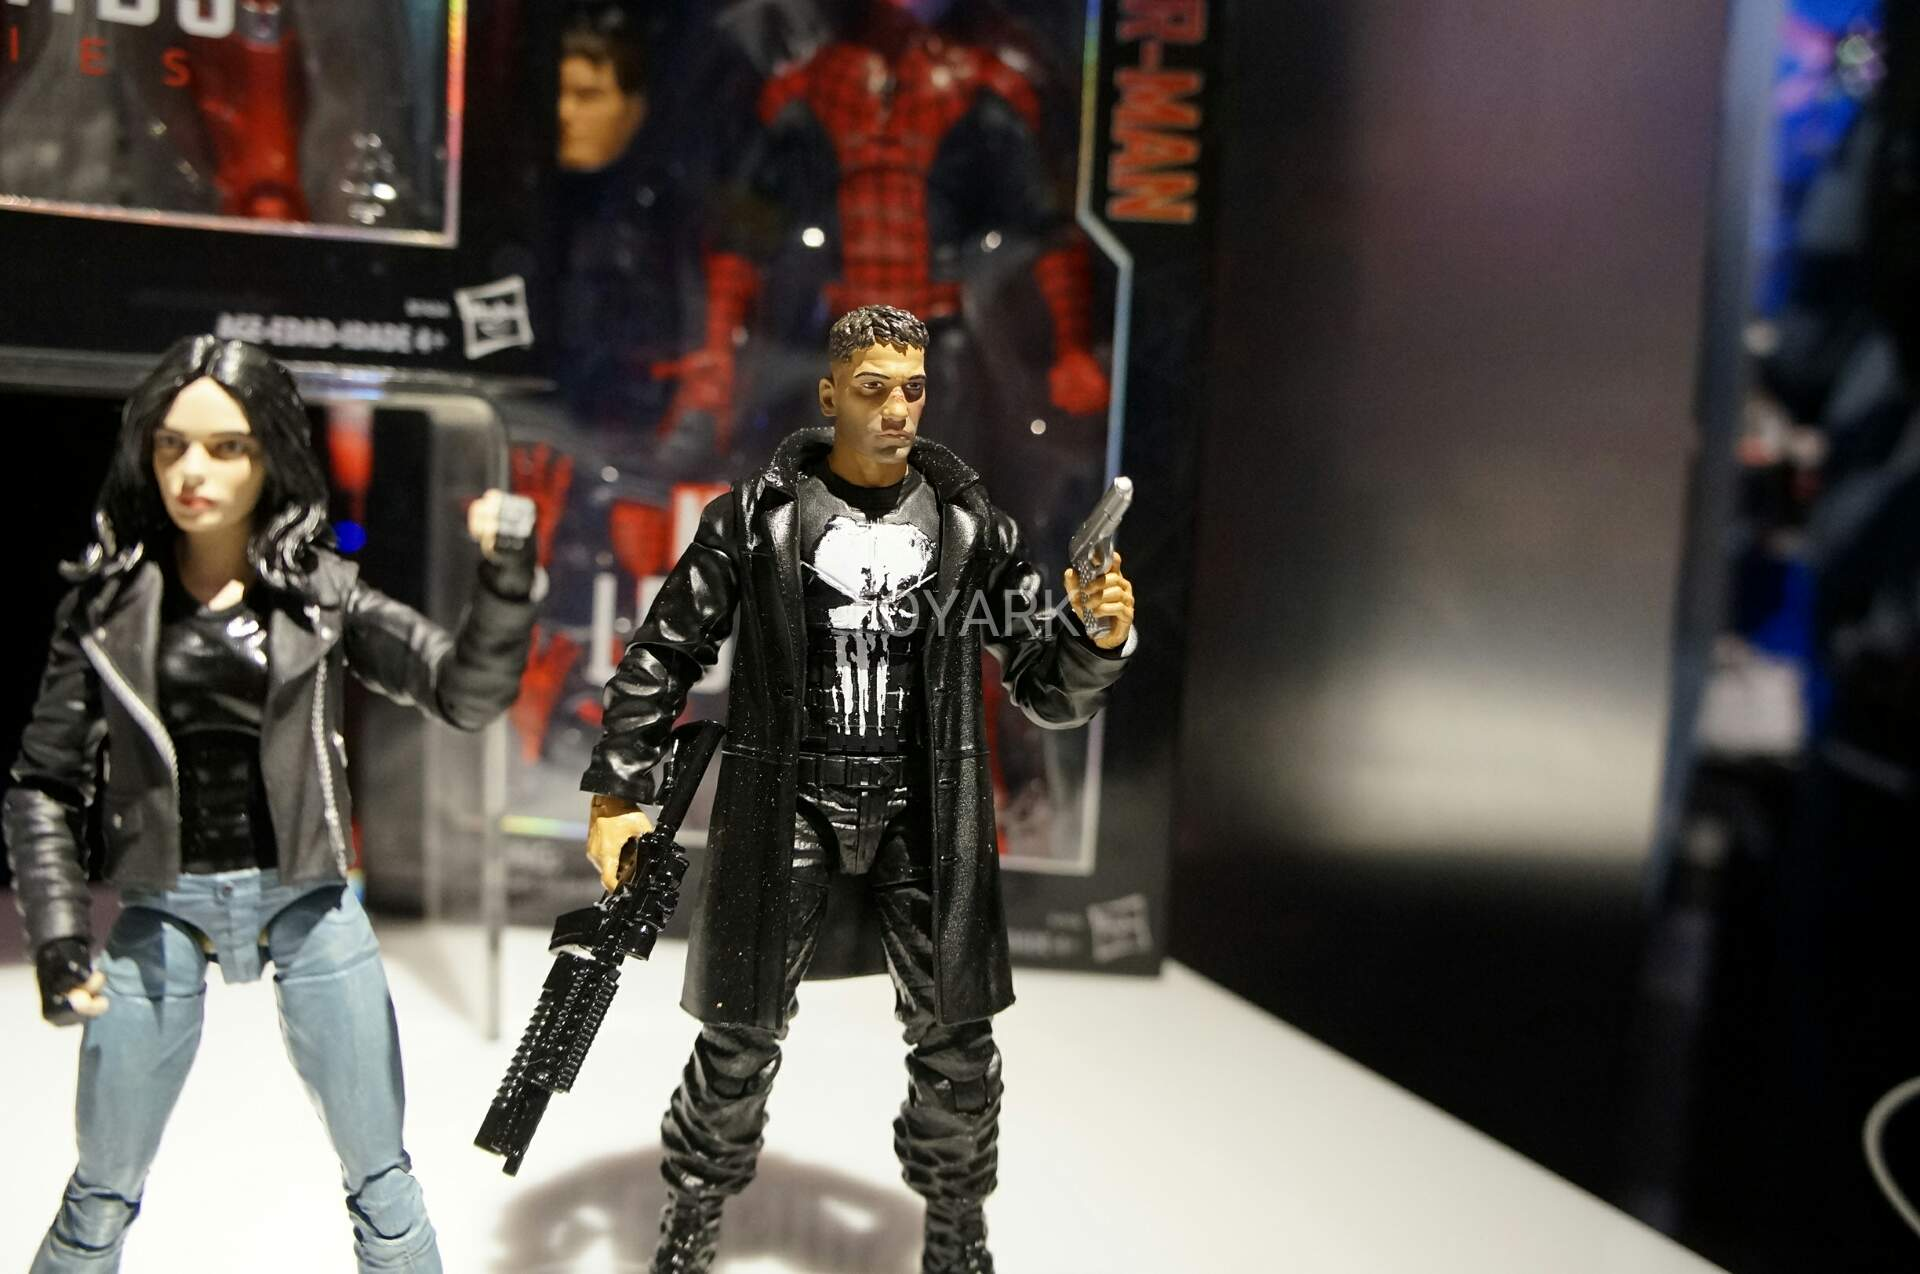 Photo taken from this year's New York Toy Fair held this weekend 3.